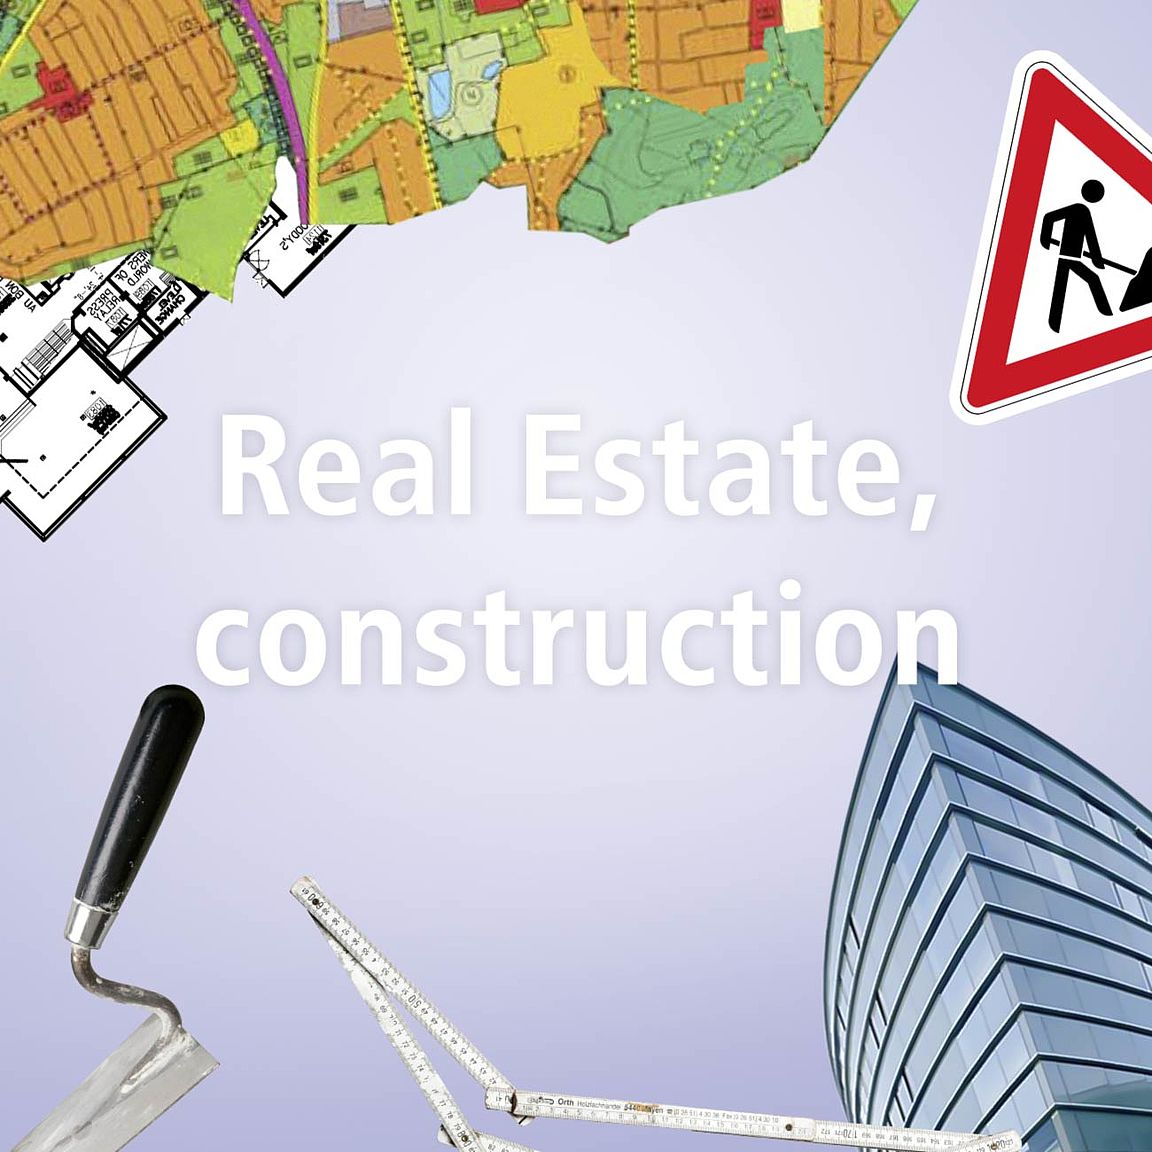 Real estate, construction